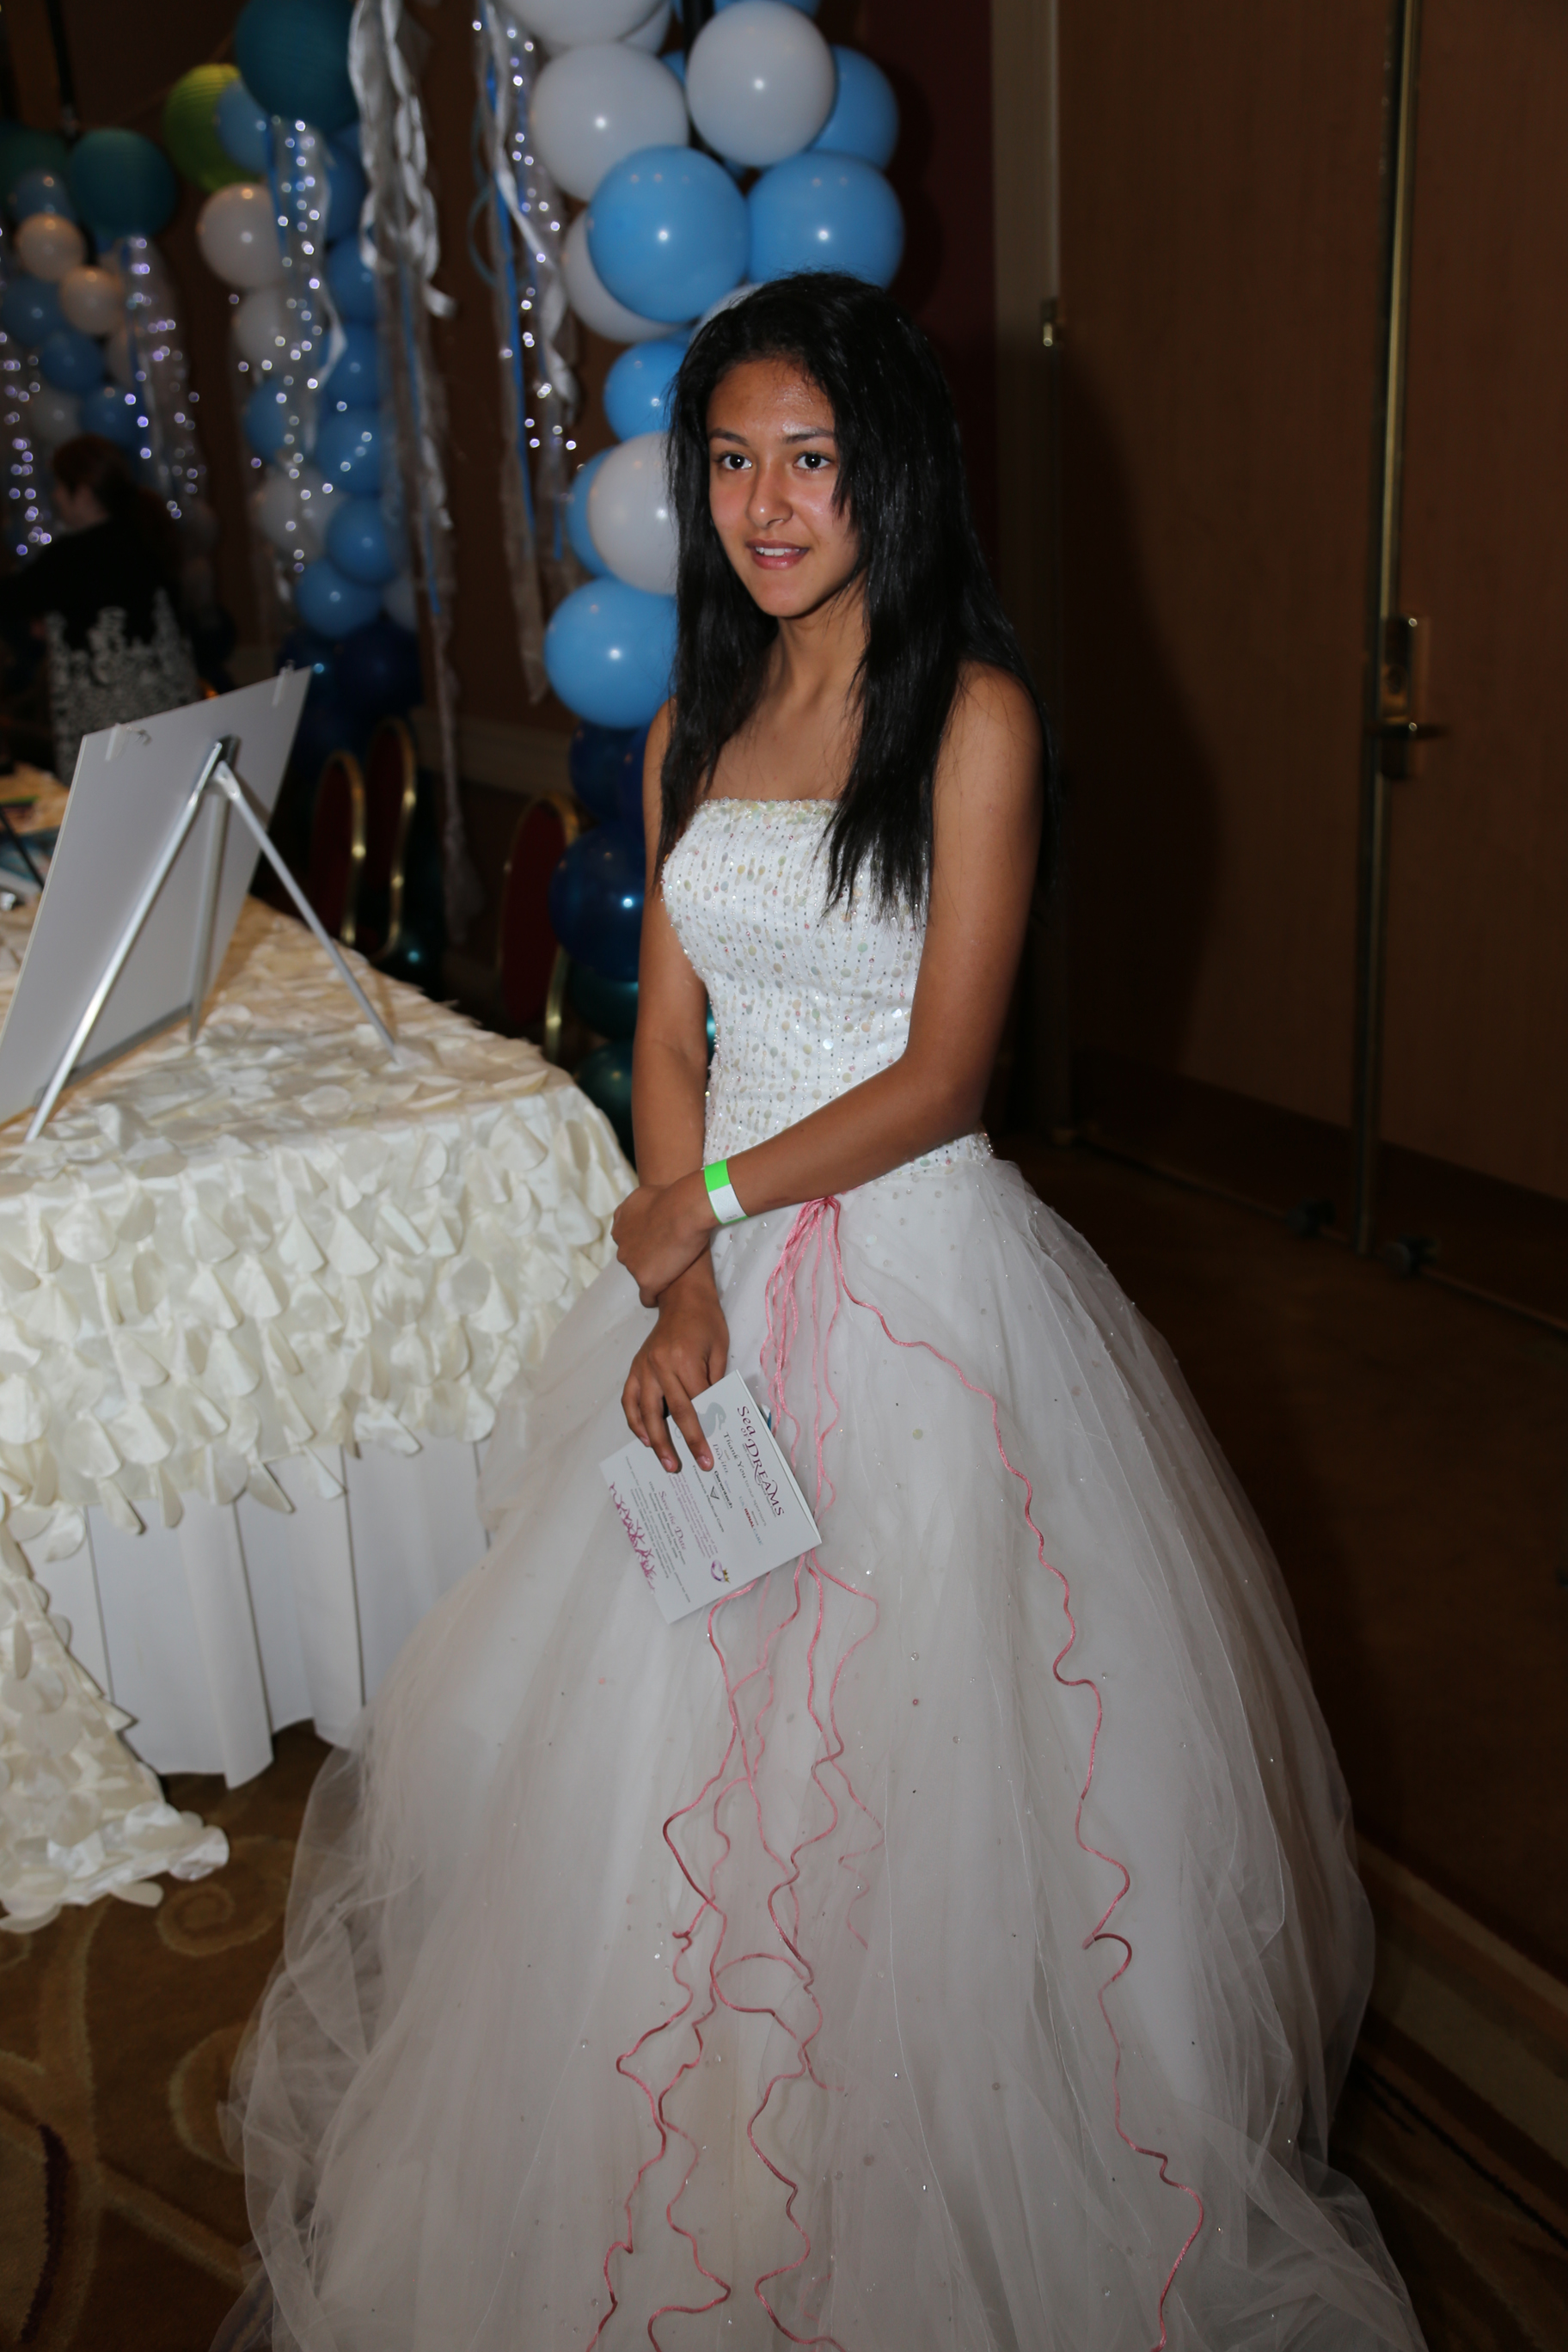 16th annual Renal Teen Prom - sea of dreams